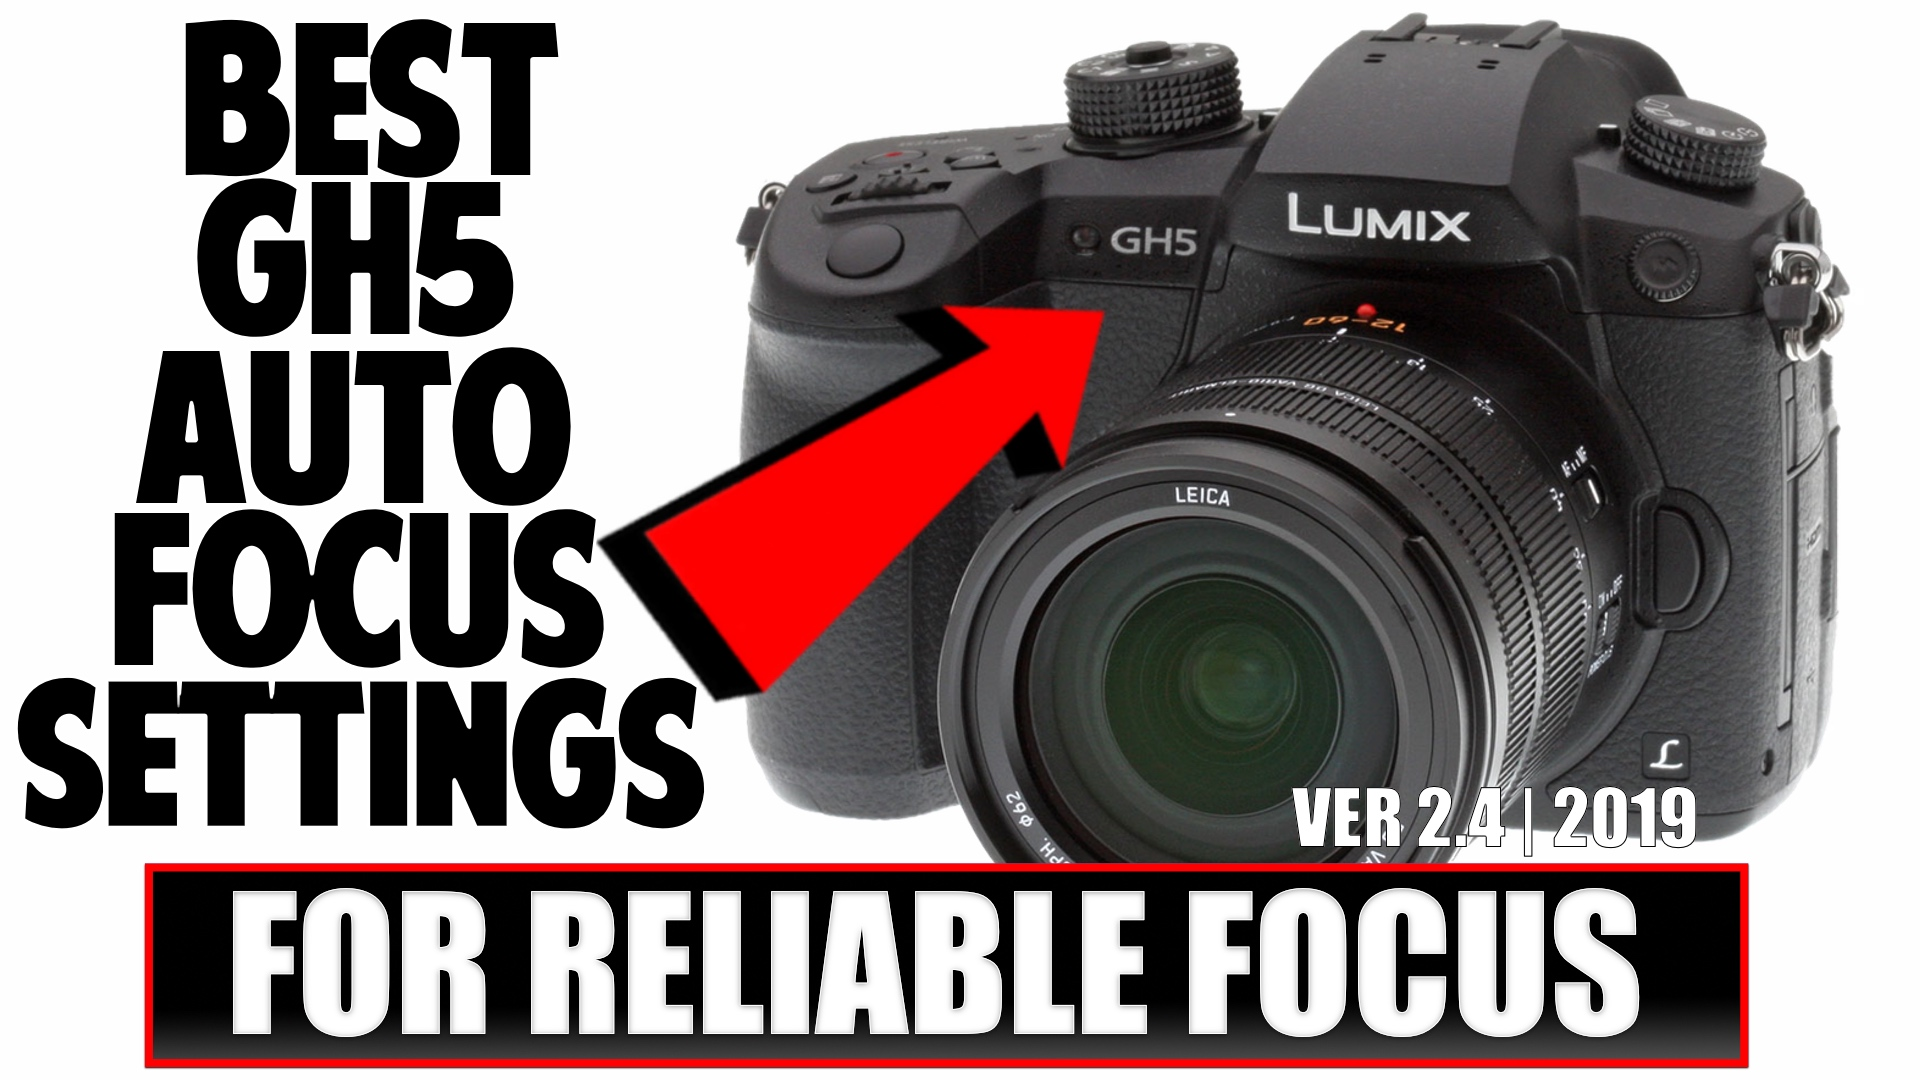 The Best GH5 Auto Focus Settings